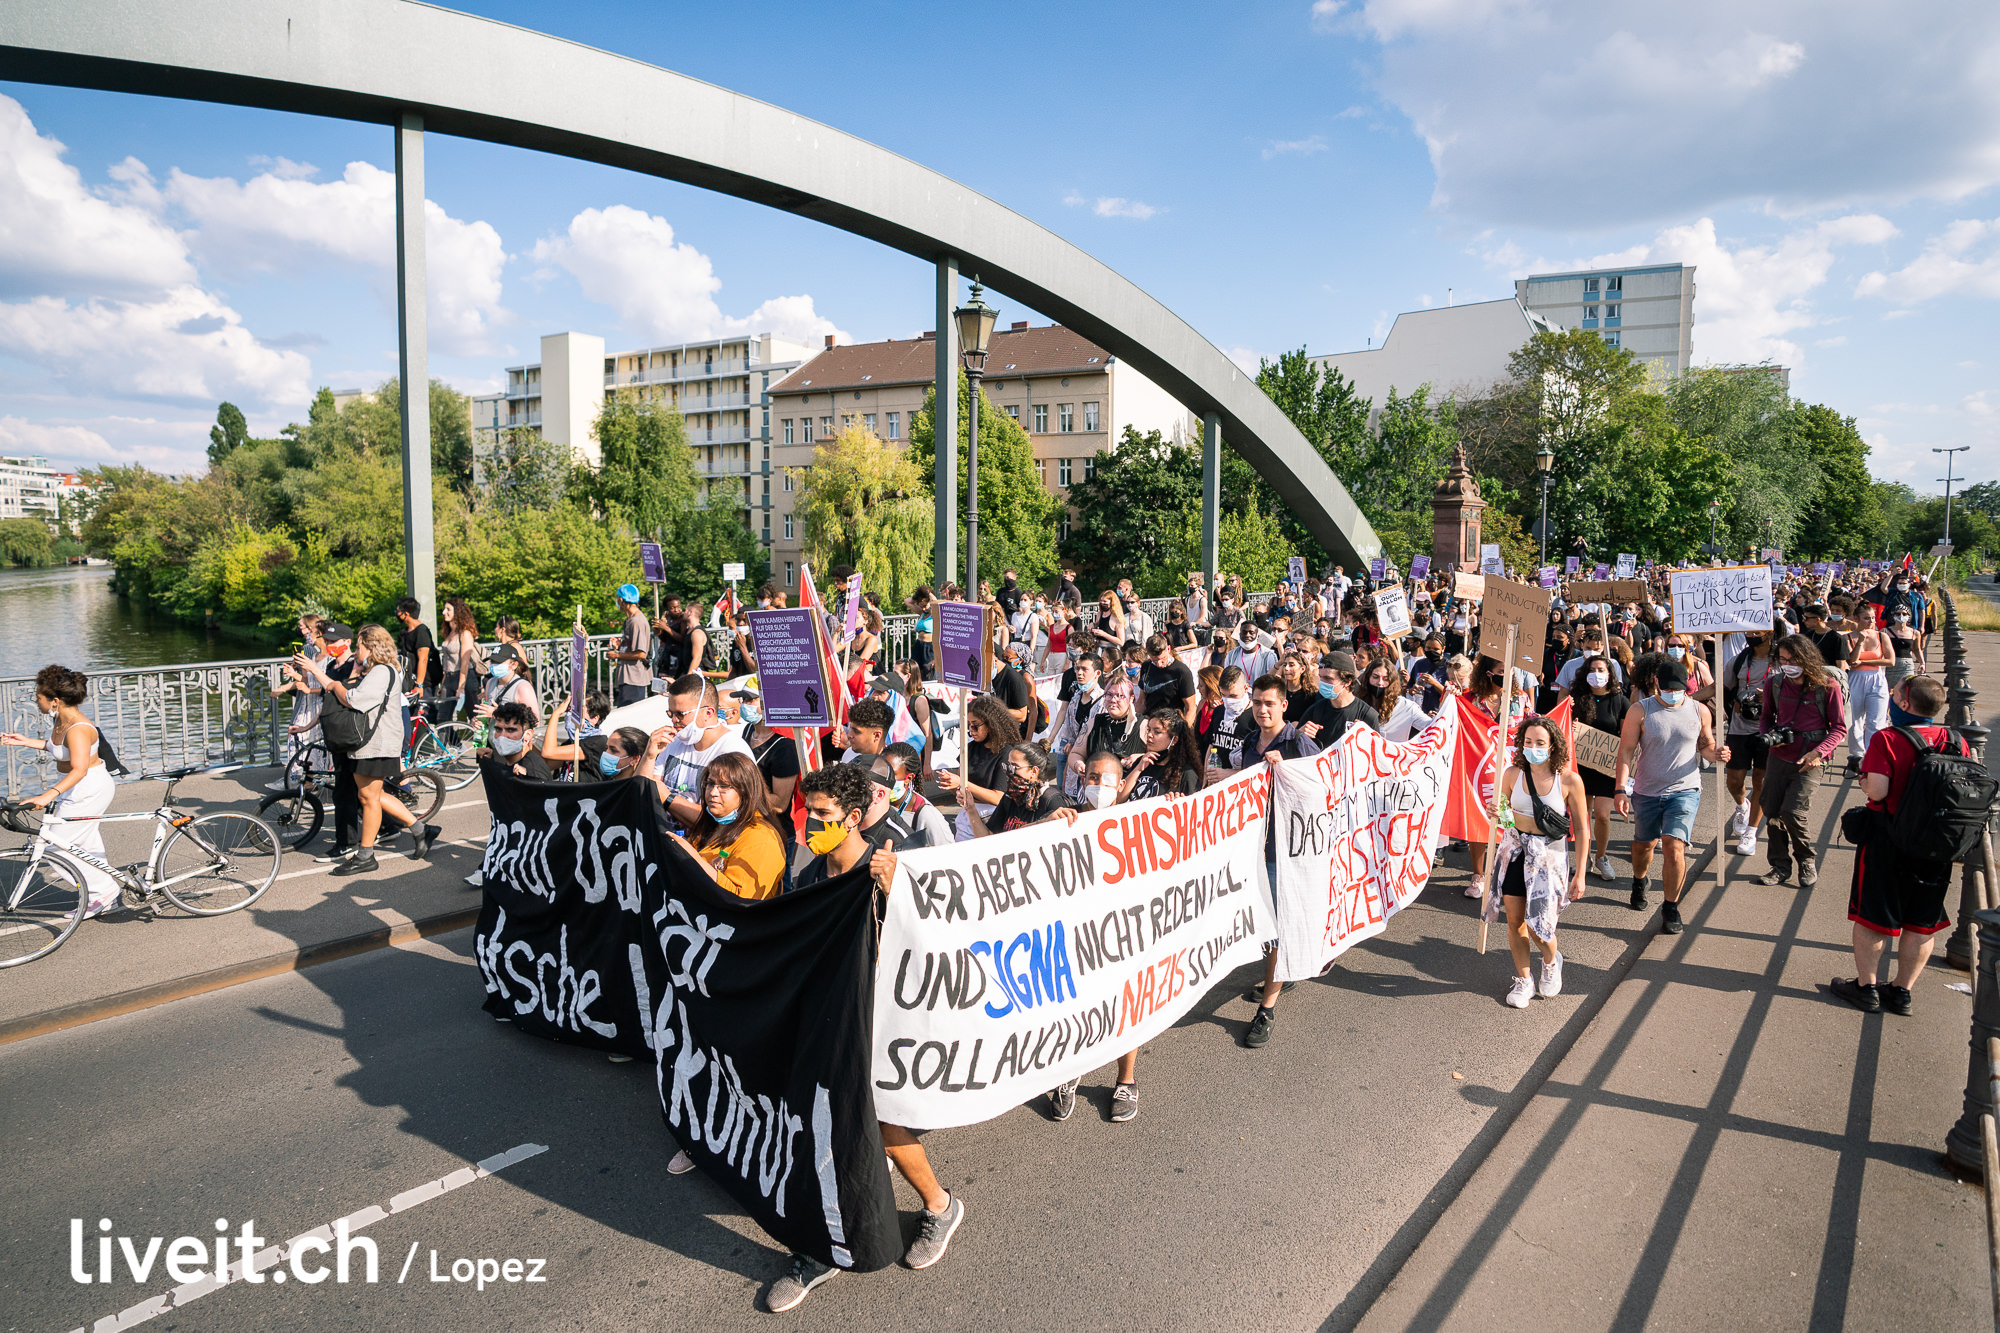 DEUTSCHLAND BLACK LIVES MATTER BERLIN